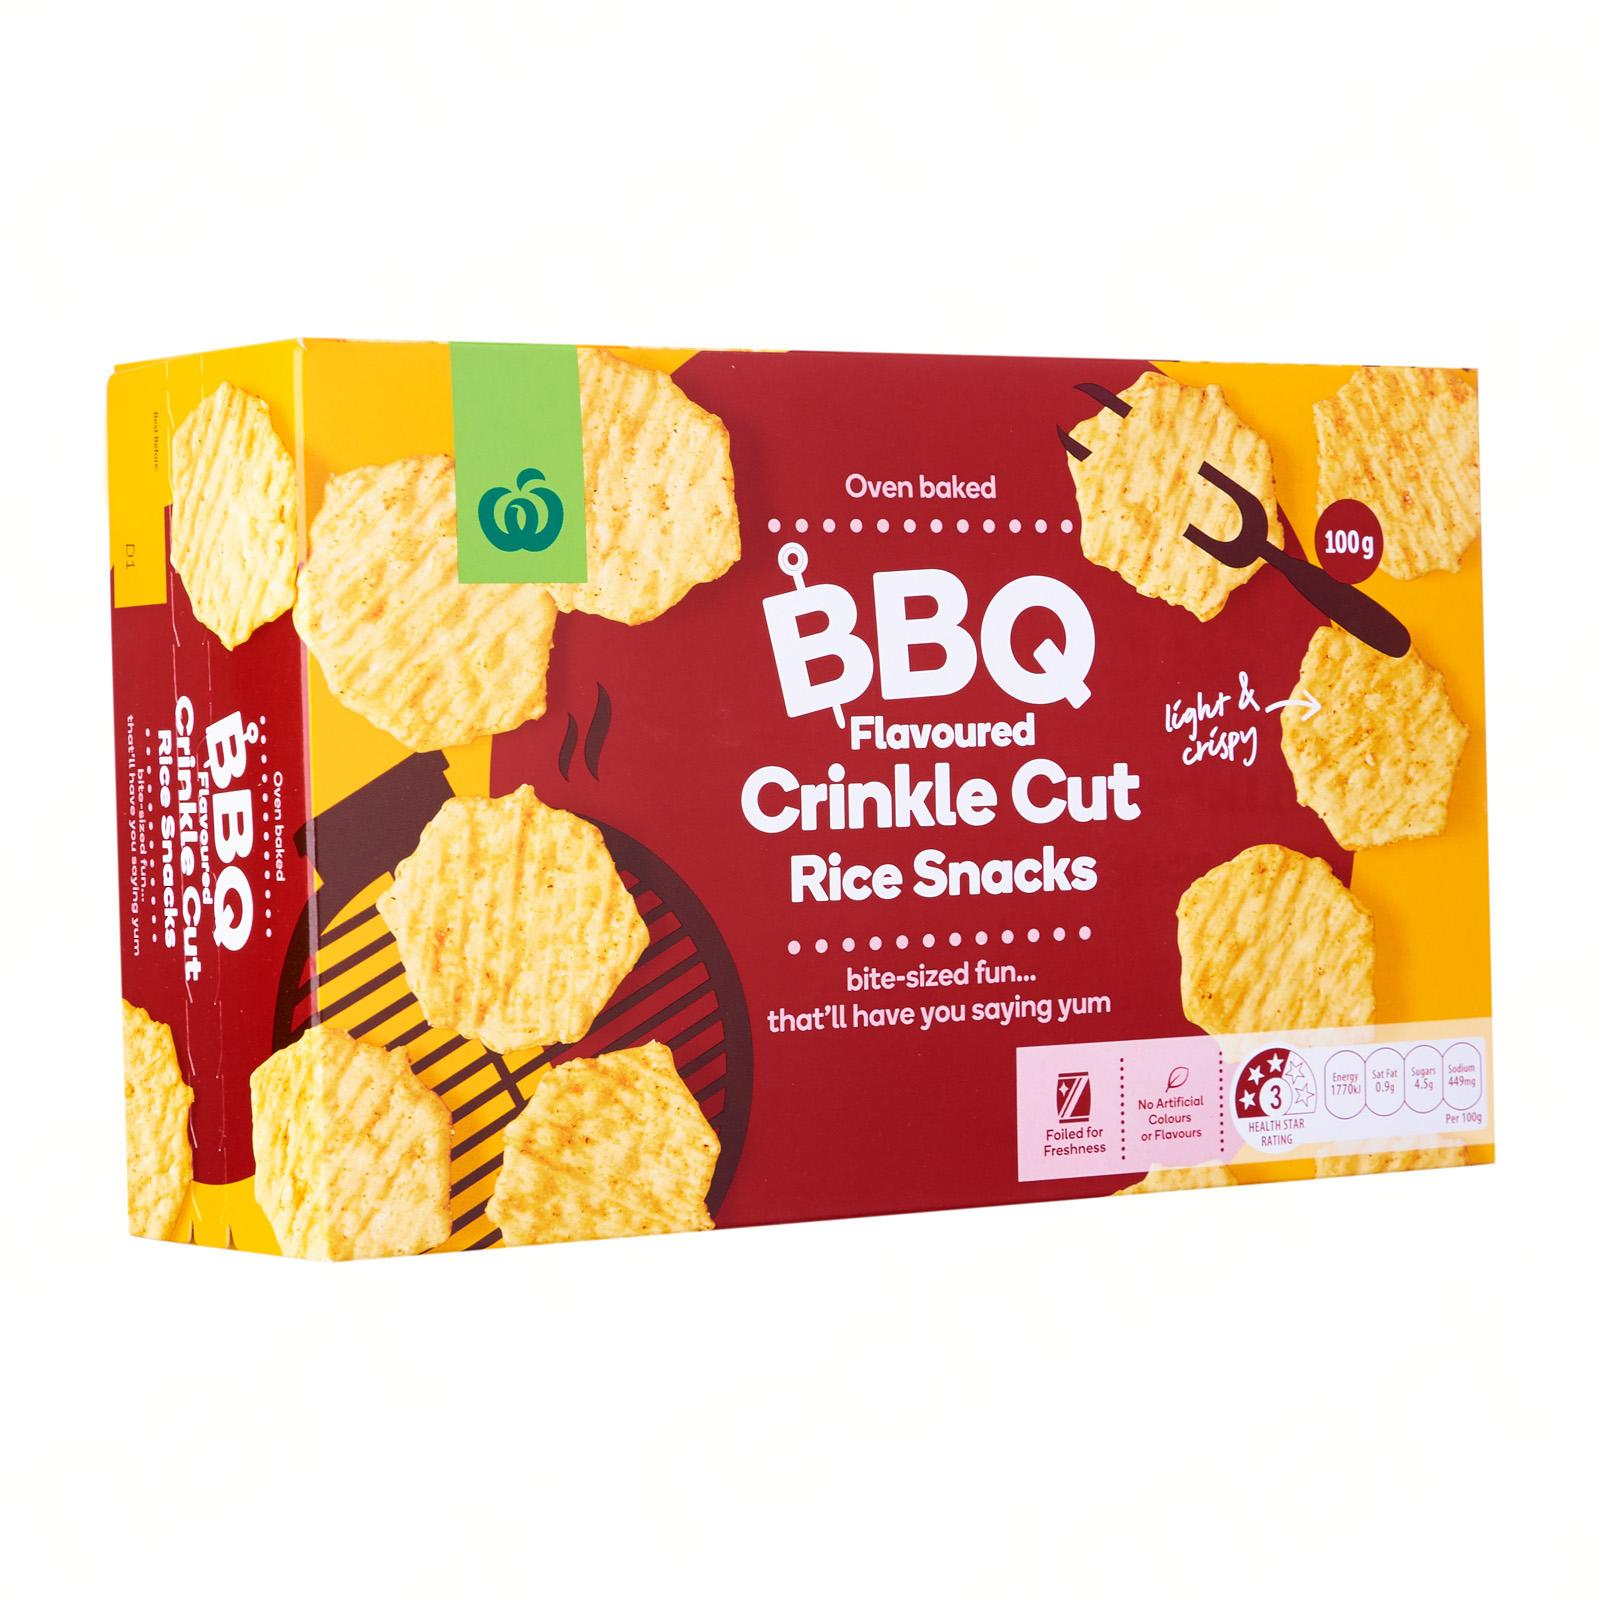 Woolworths Crinkle Cut Rice Crackers Bbq 100G